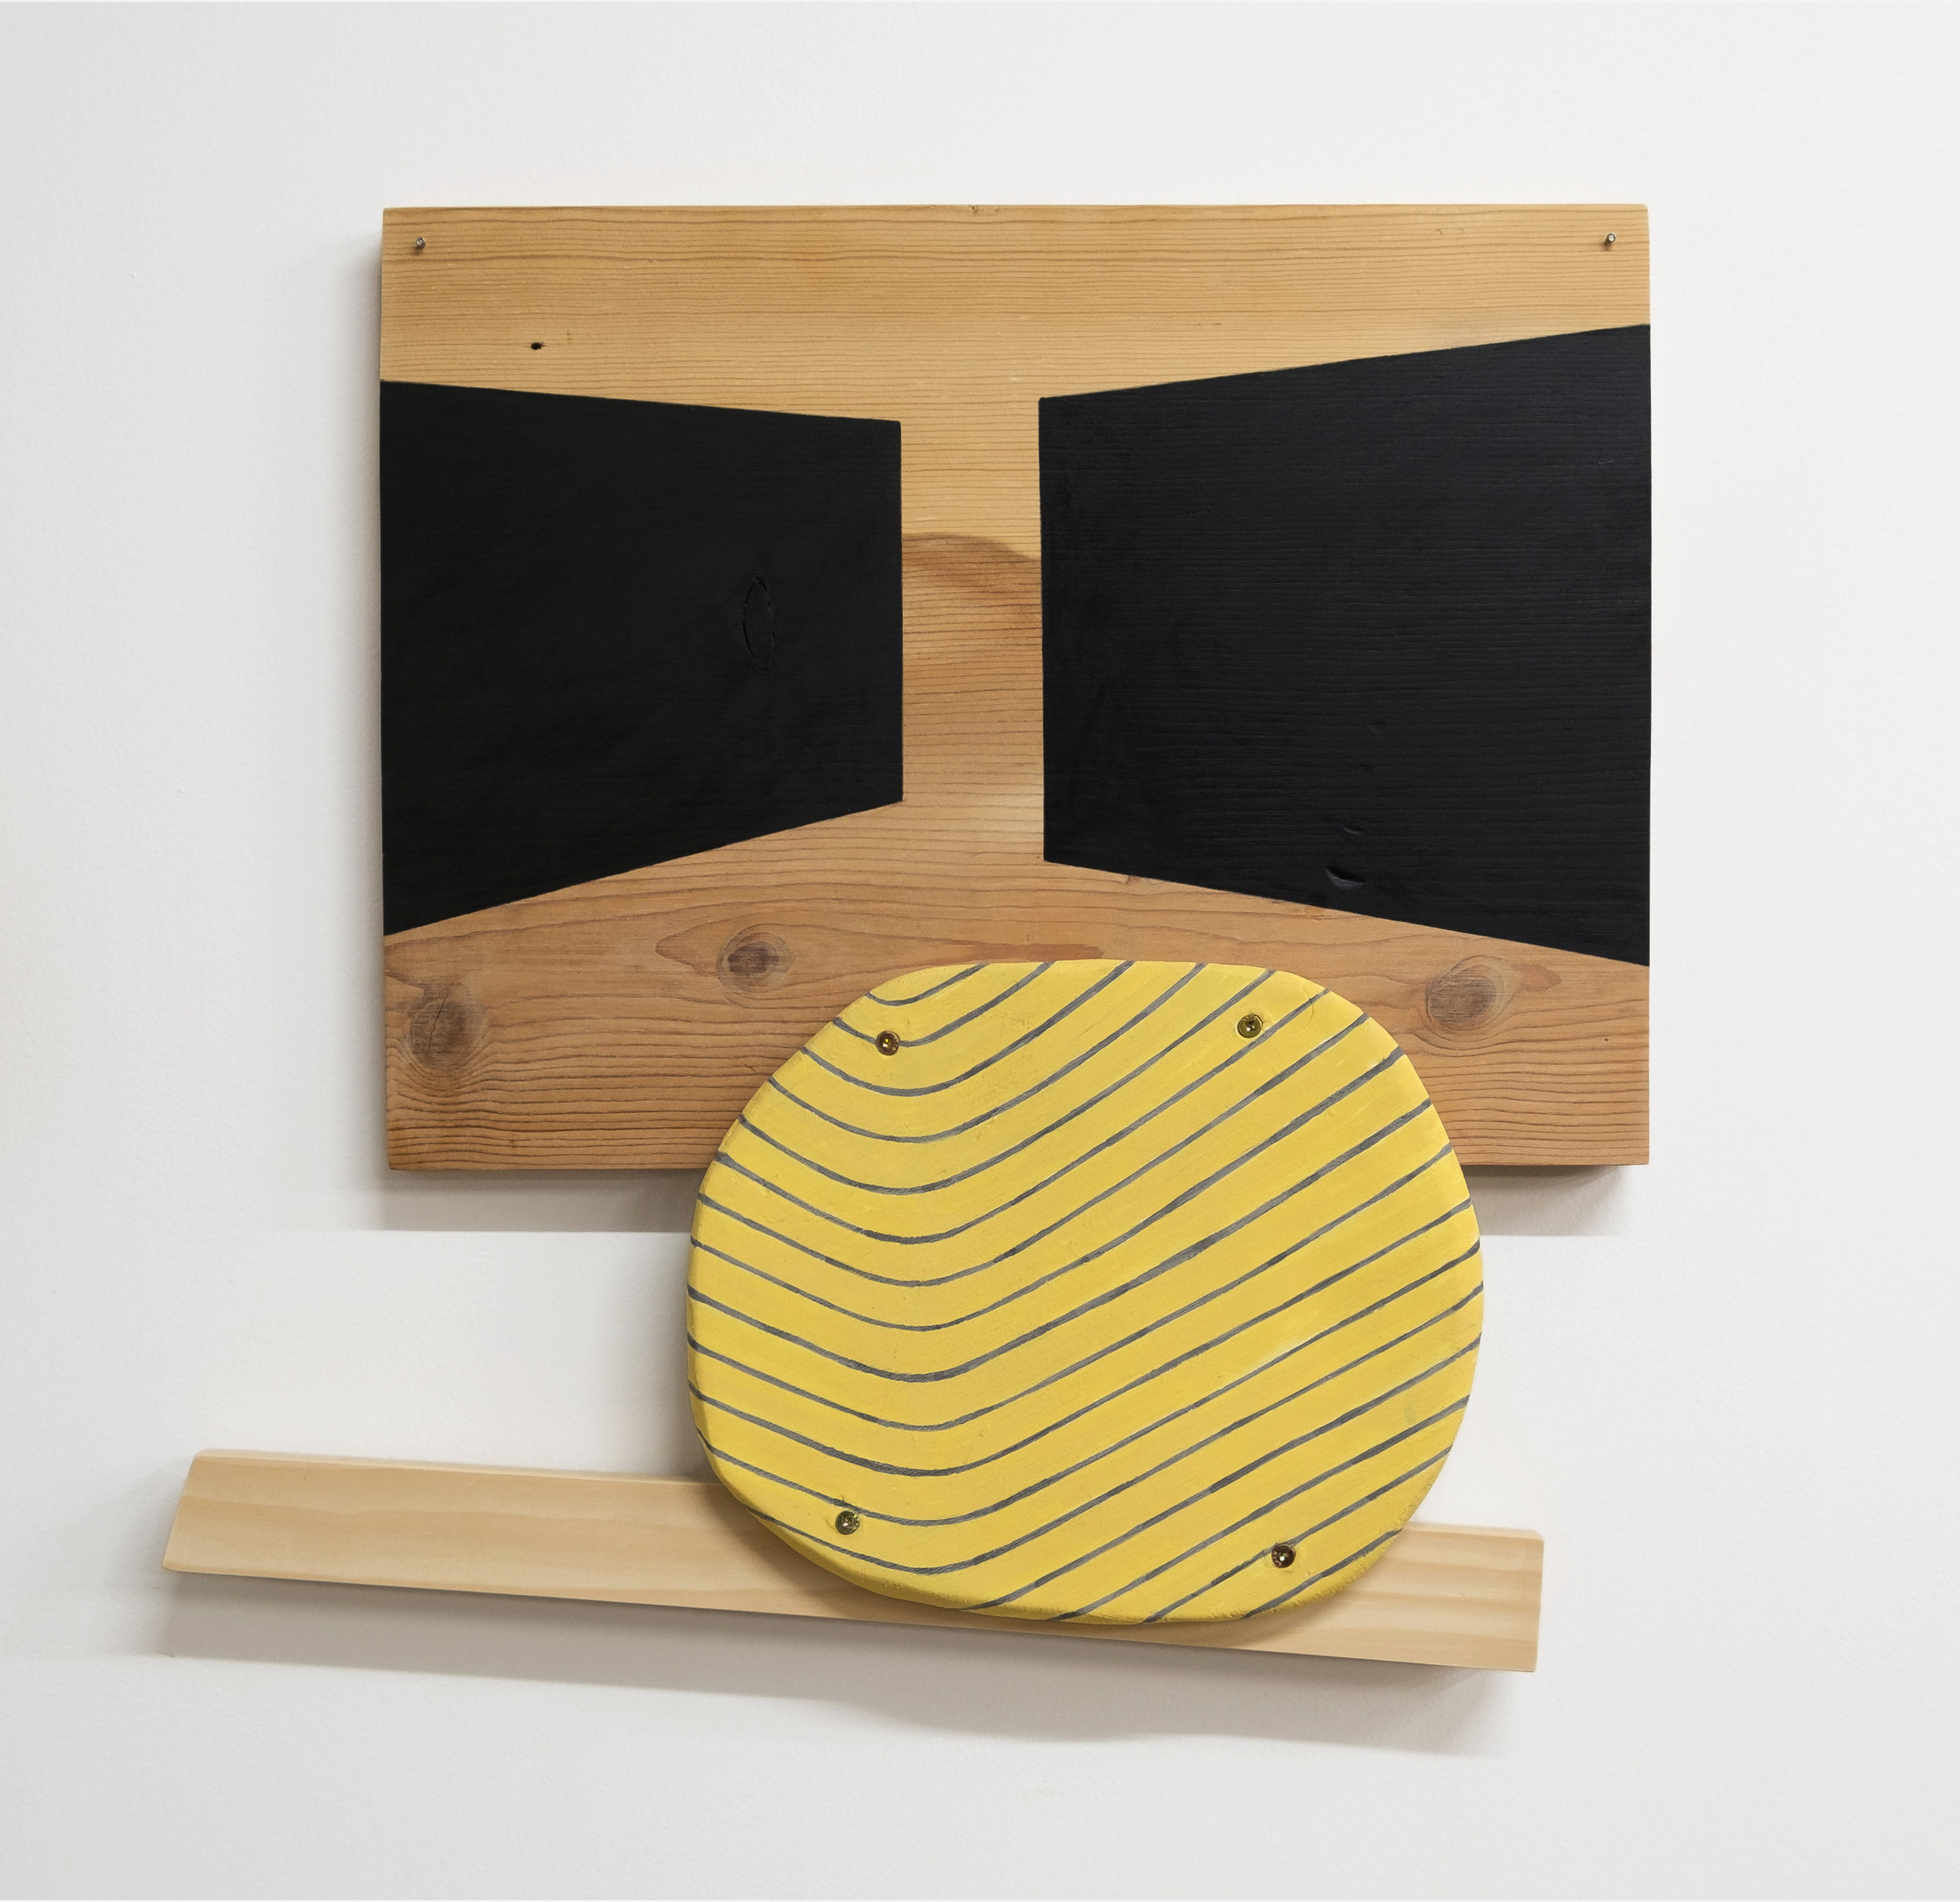 """Untitled, 2018, wood, paint, ink, nails, screws, fired clay, 17 x 17 x 2"""""""